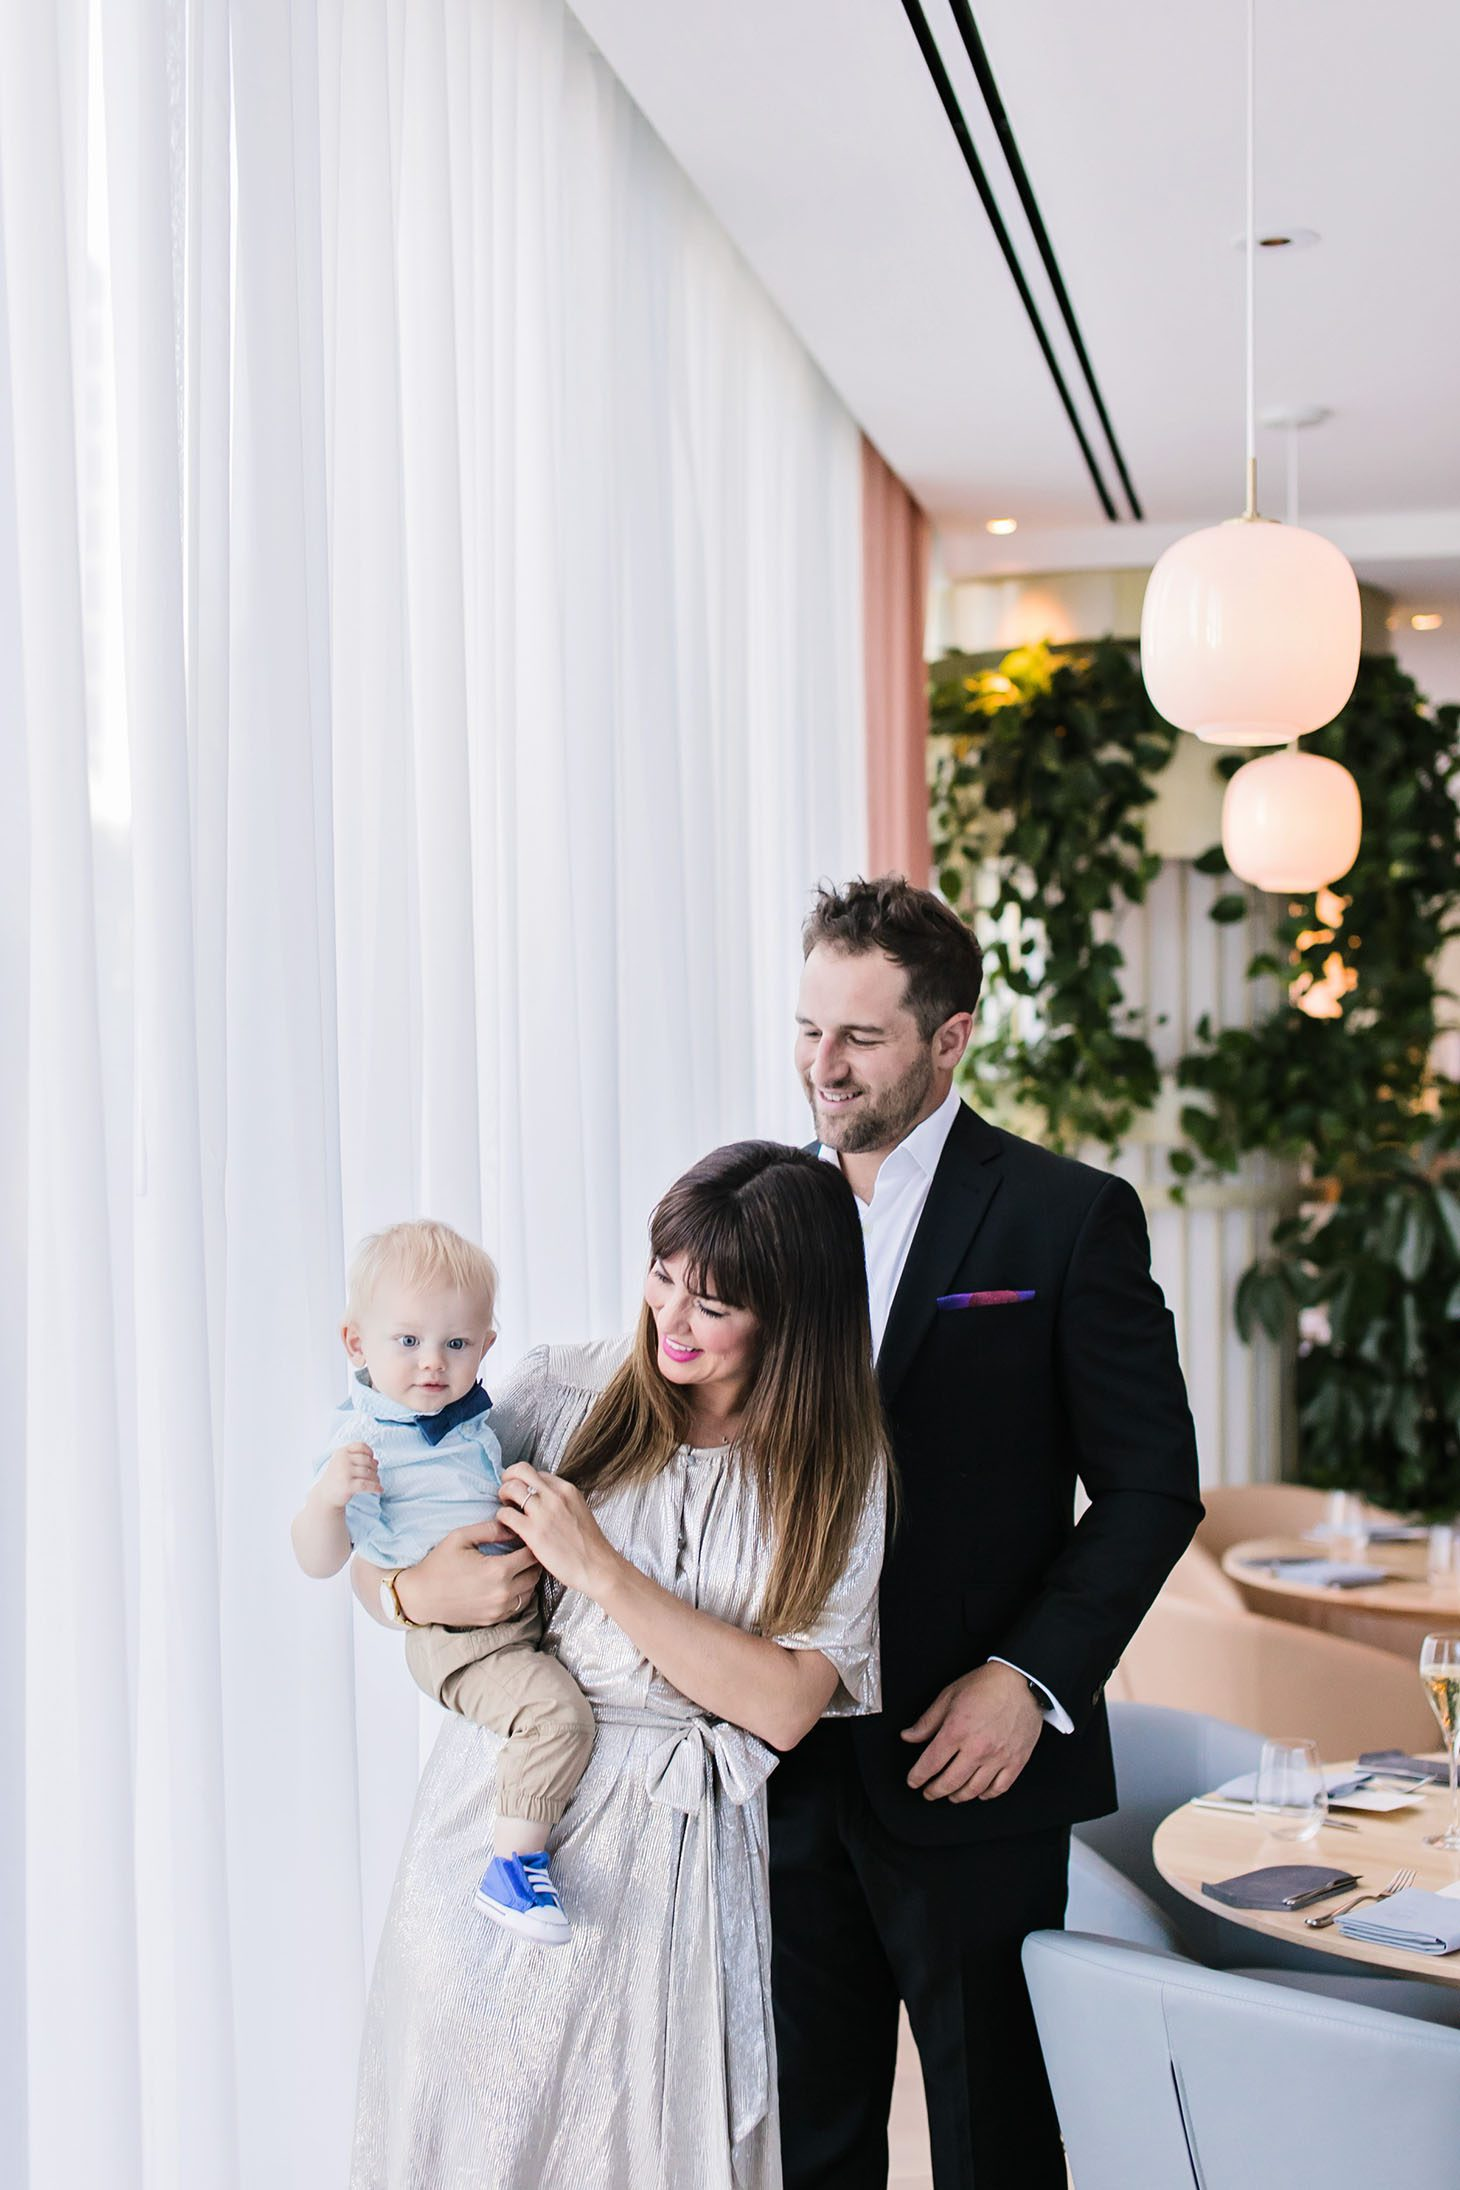 Jillian Harris What Justin and I Love About Each Other